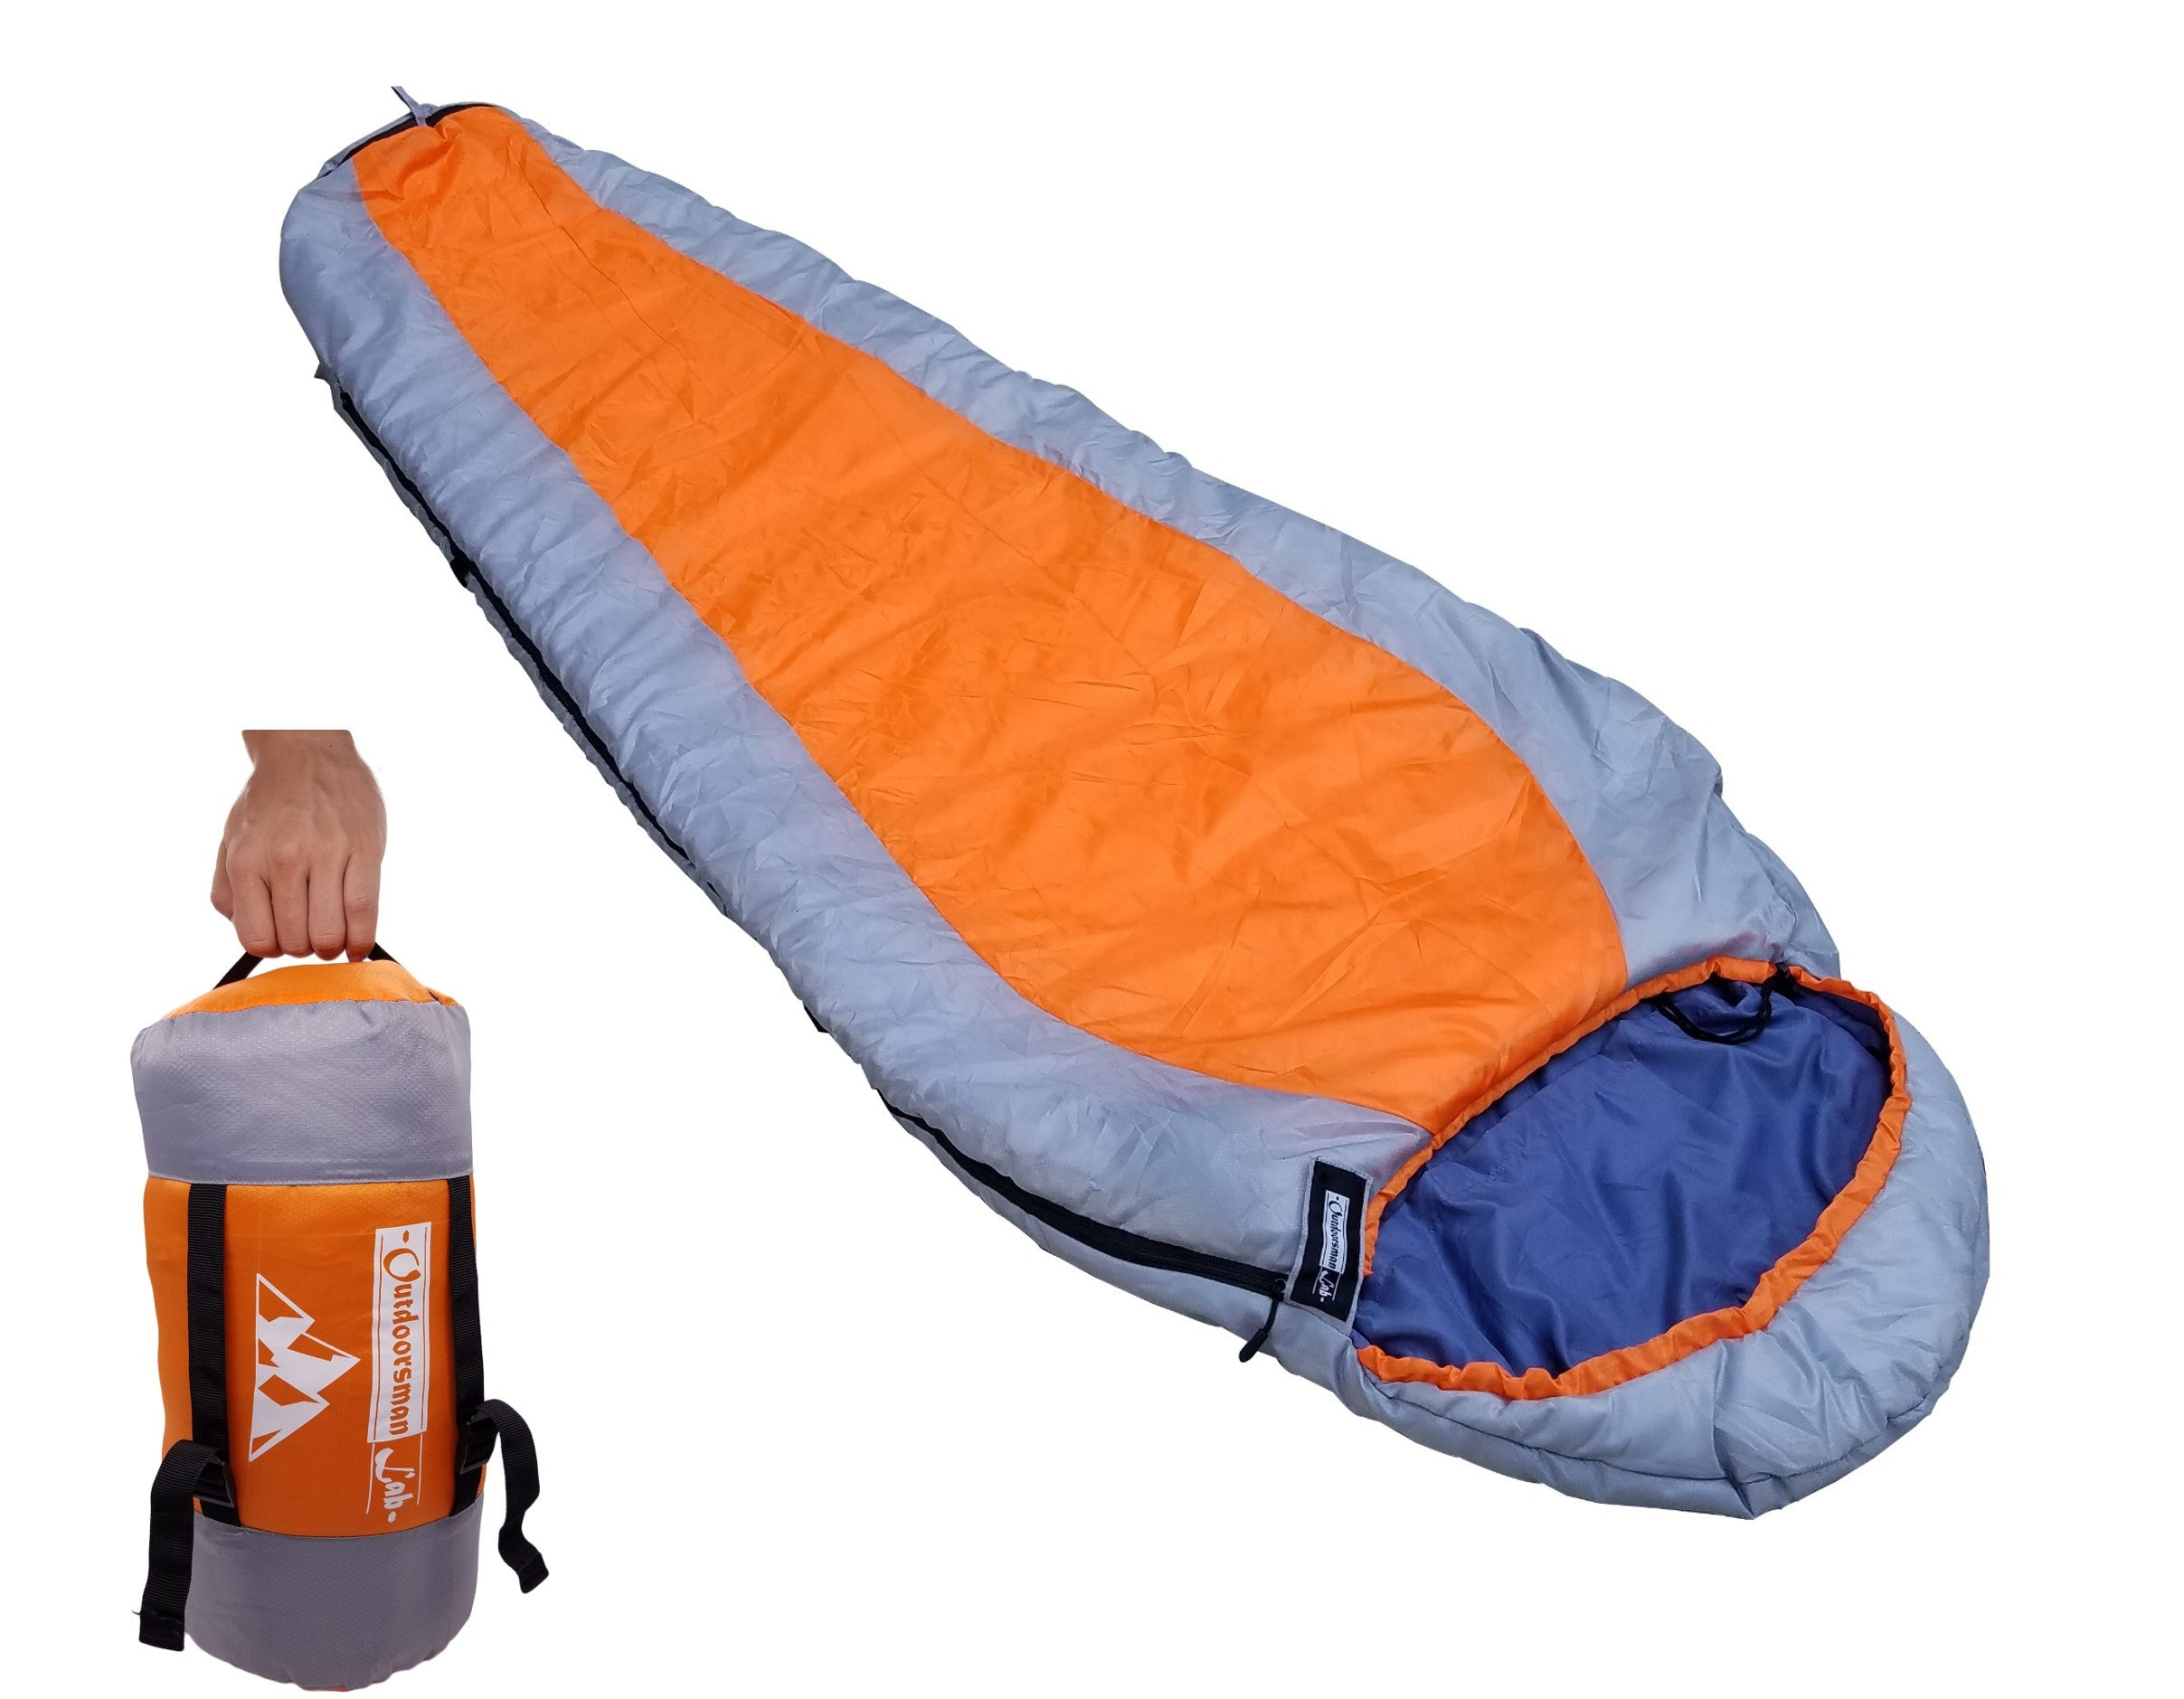 Mummy Sleeping Bag Orange - OutdoorsmanLab